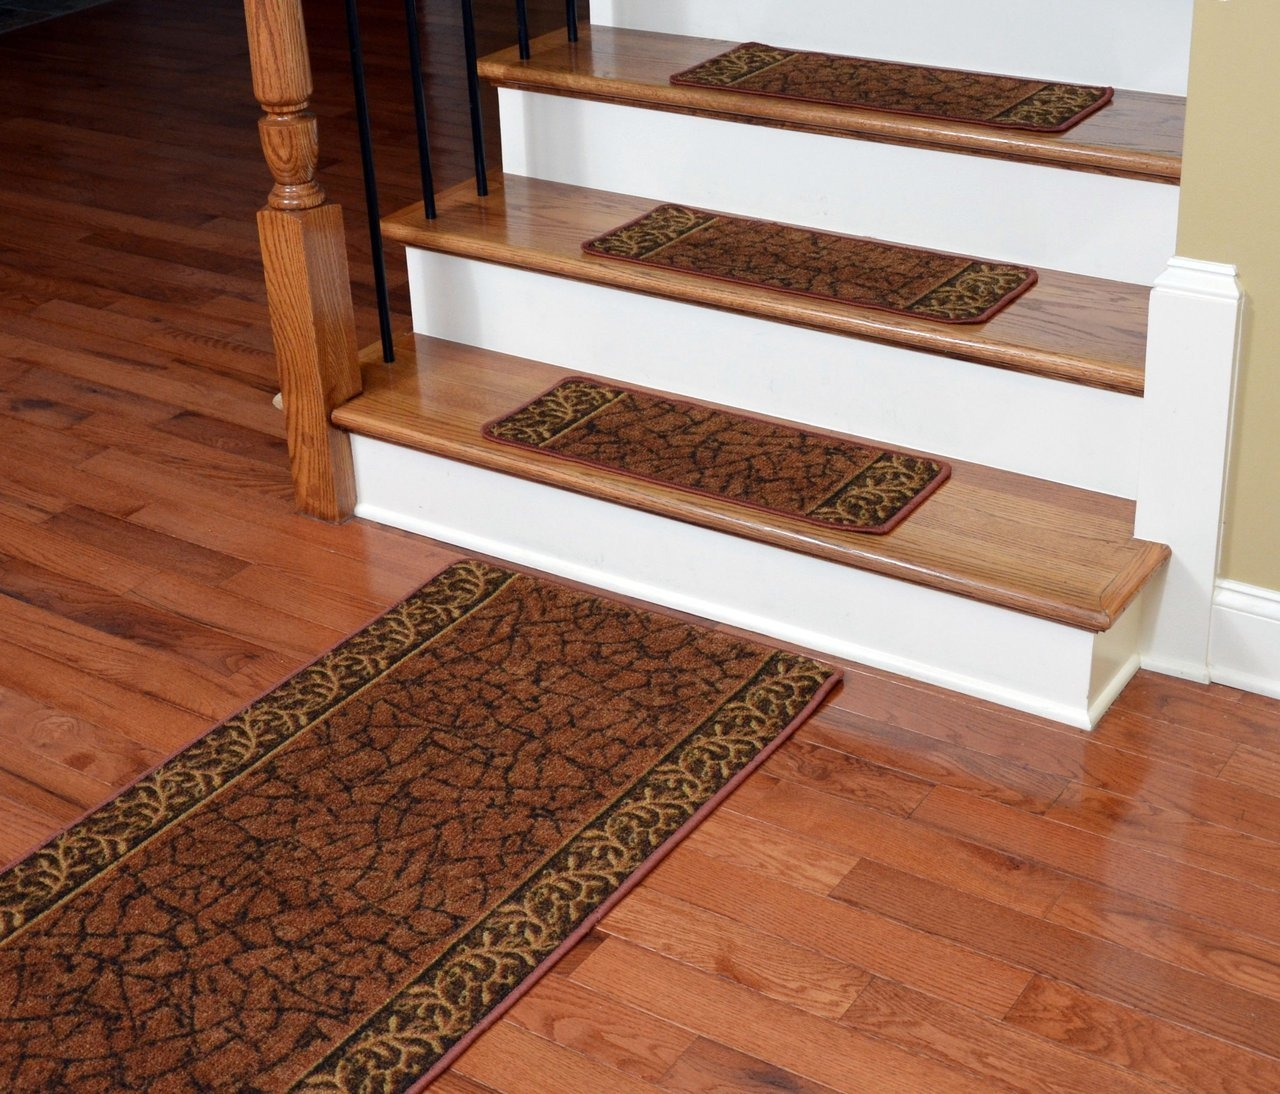 Dean Washable Non Skid Carpet Stair Treads Garden Path Terra Pertaining To Basket Weave Washable Indoor Stair Tread Rugs (Image 9 of 15)